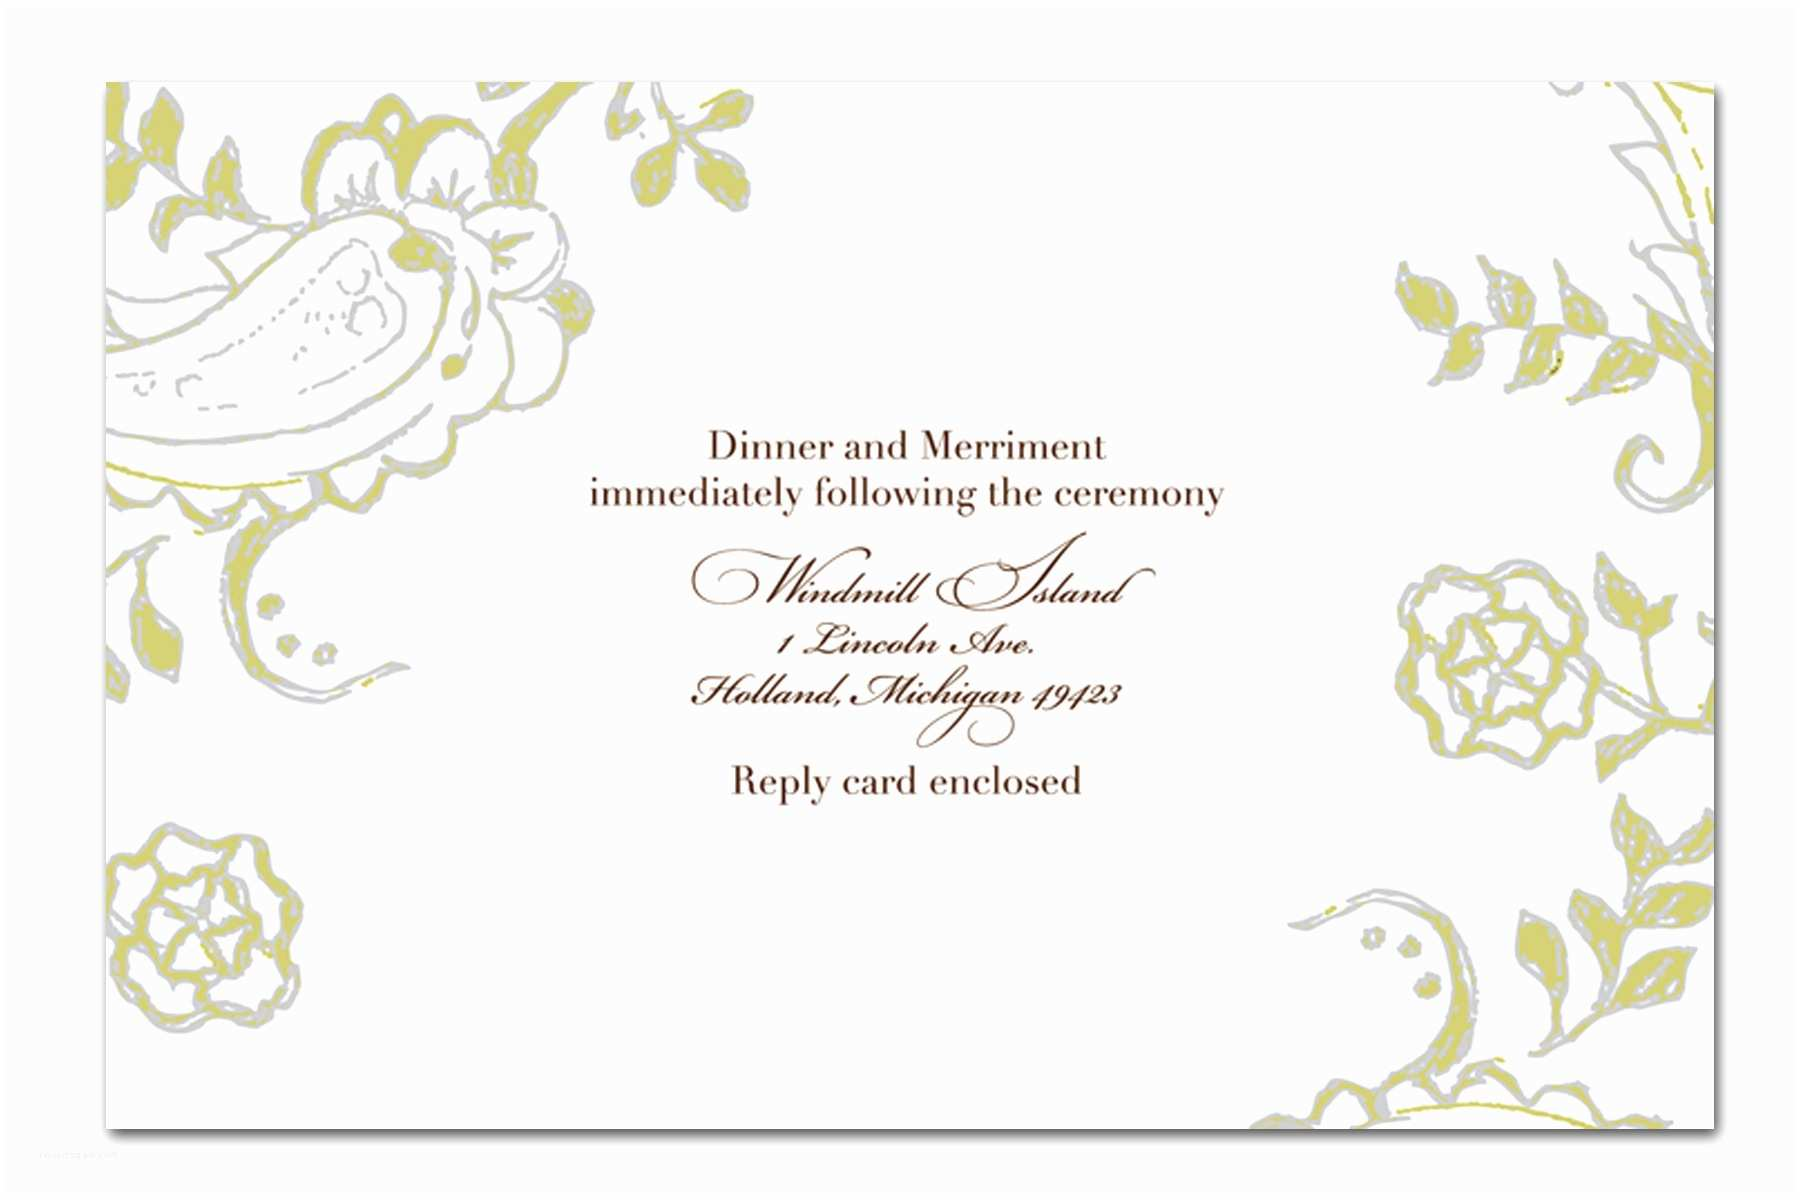 Free Email Wedding Invitation Templates Handmade Wedding Invitation Template Design